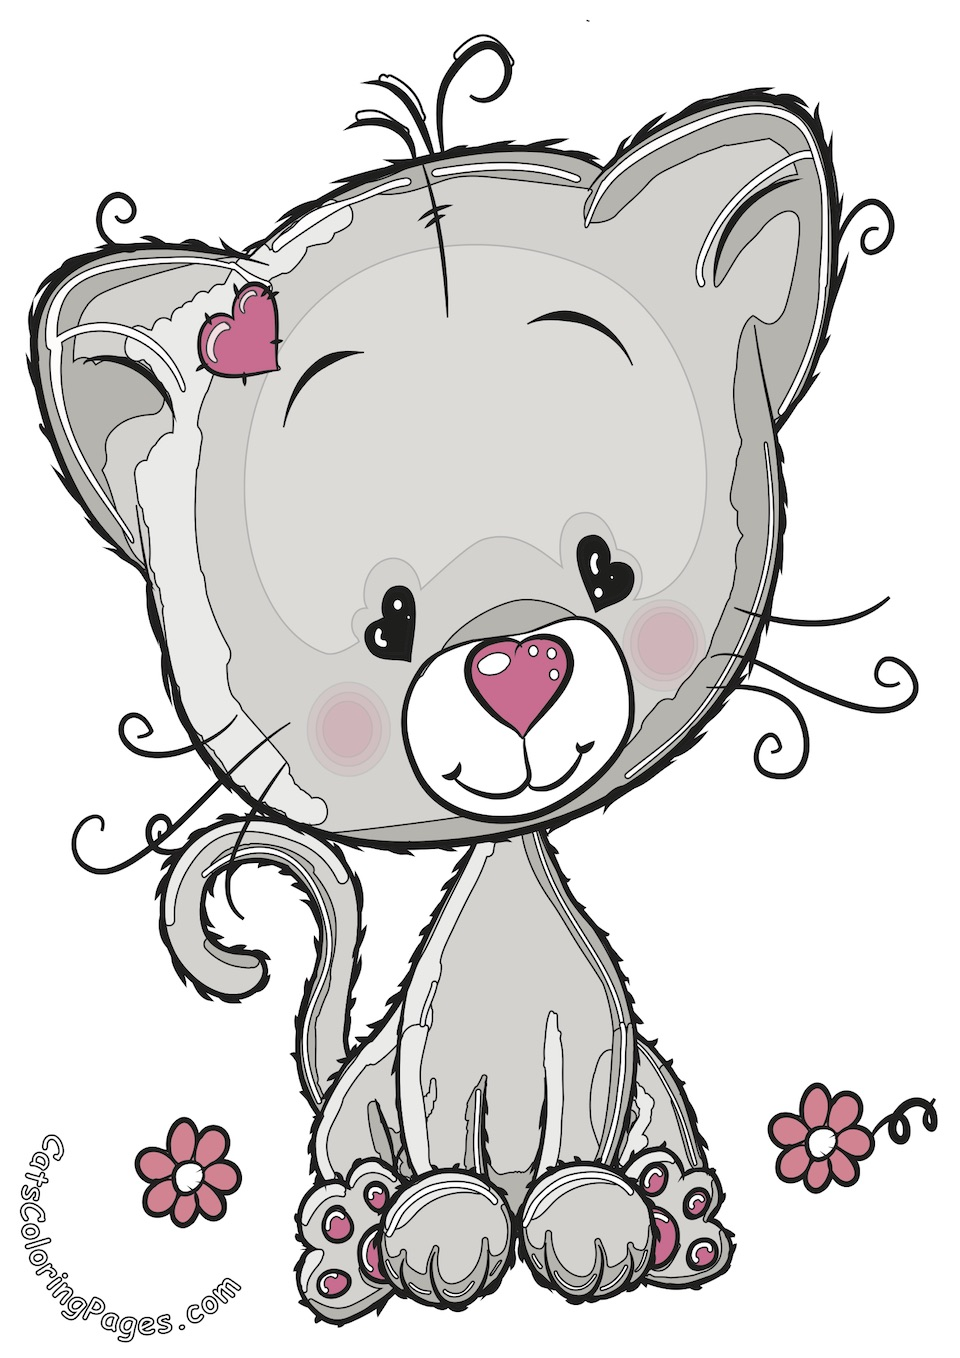 Cute Kitten in Love Colored Coloring Page